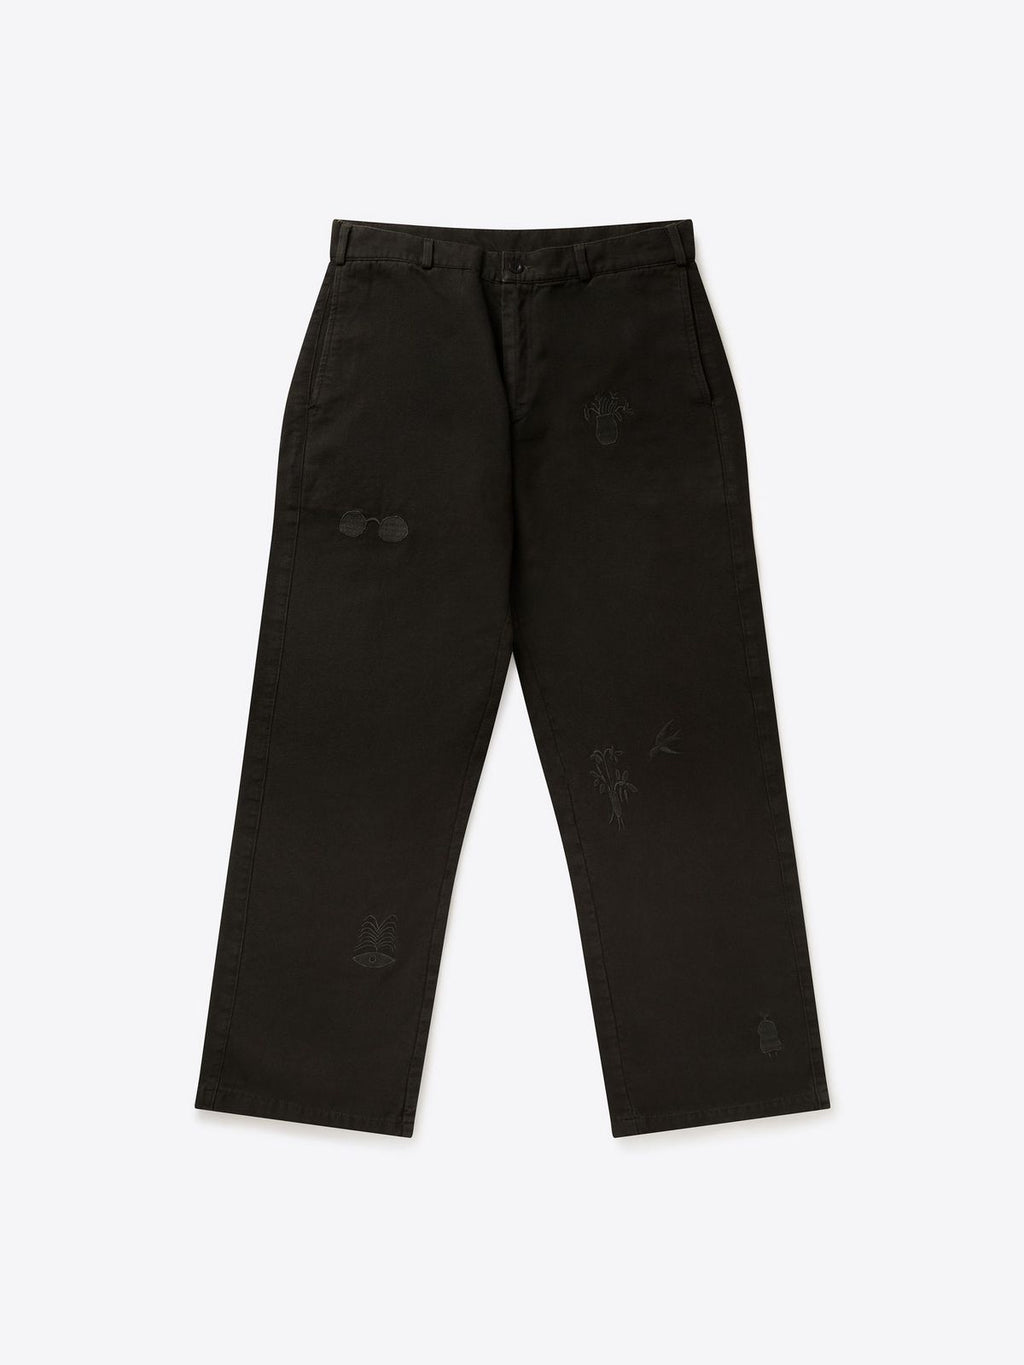 Dada Trousers Black